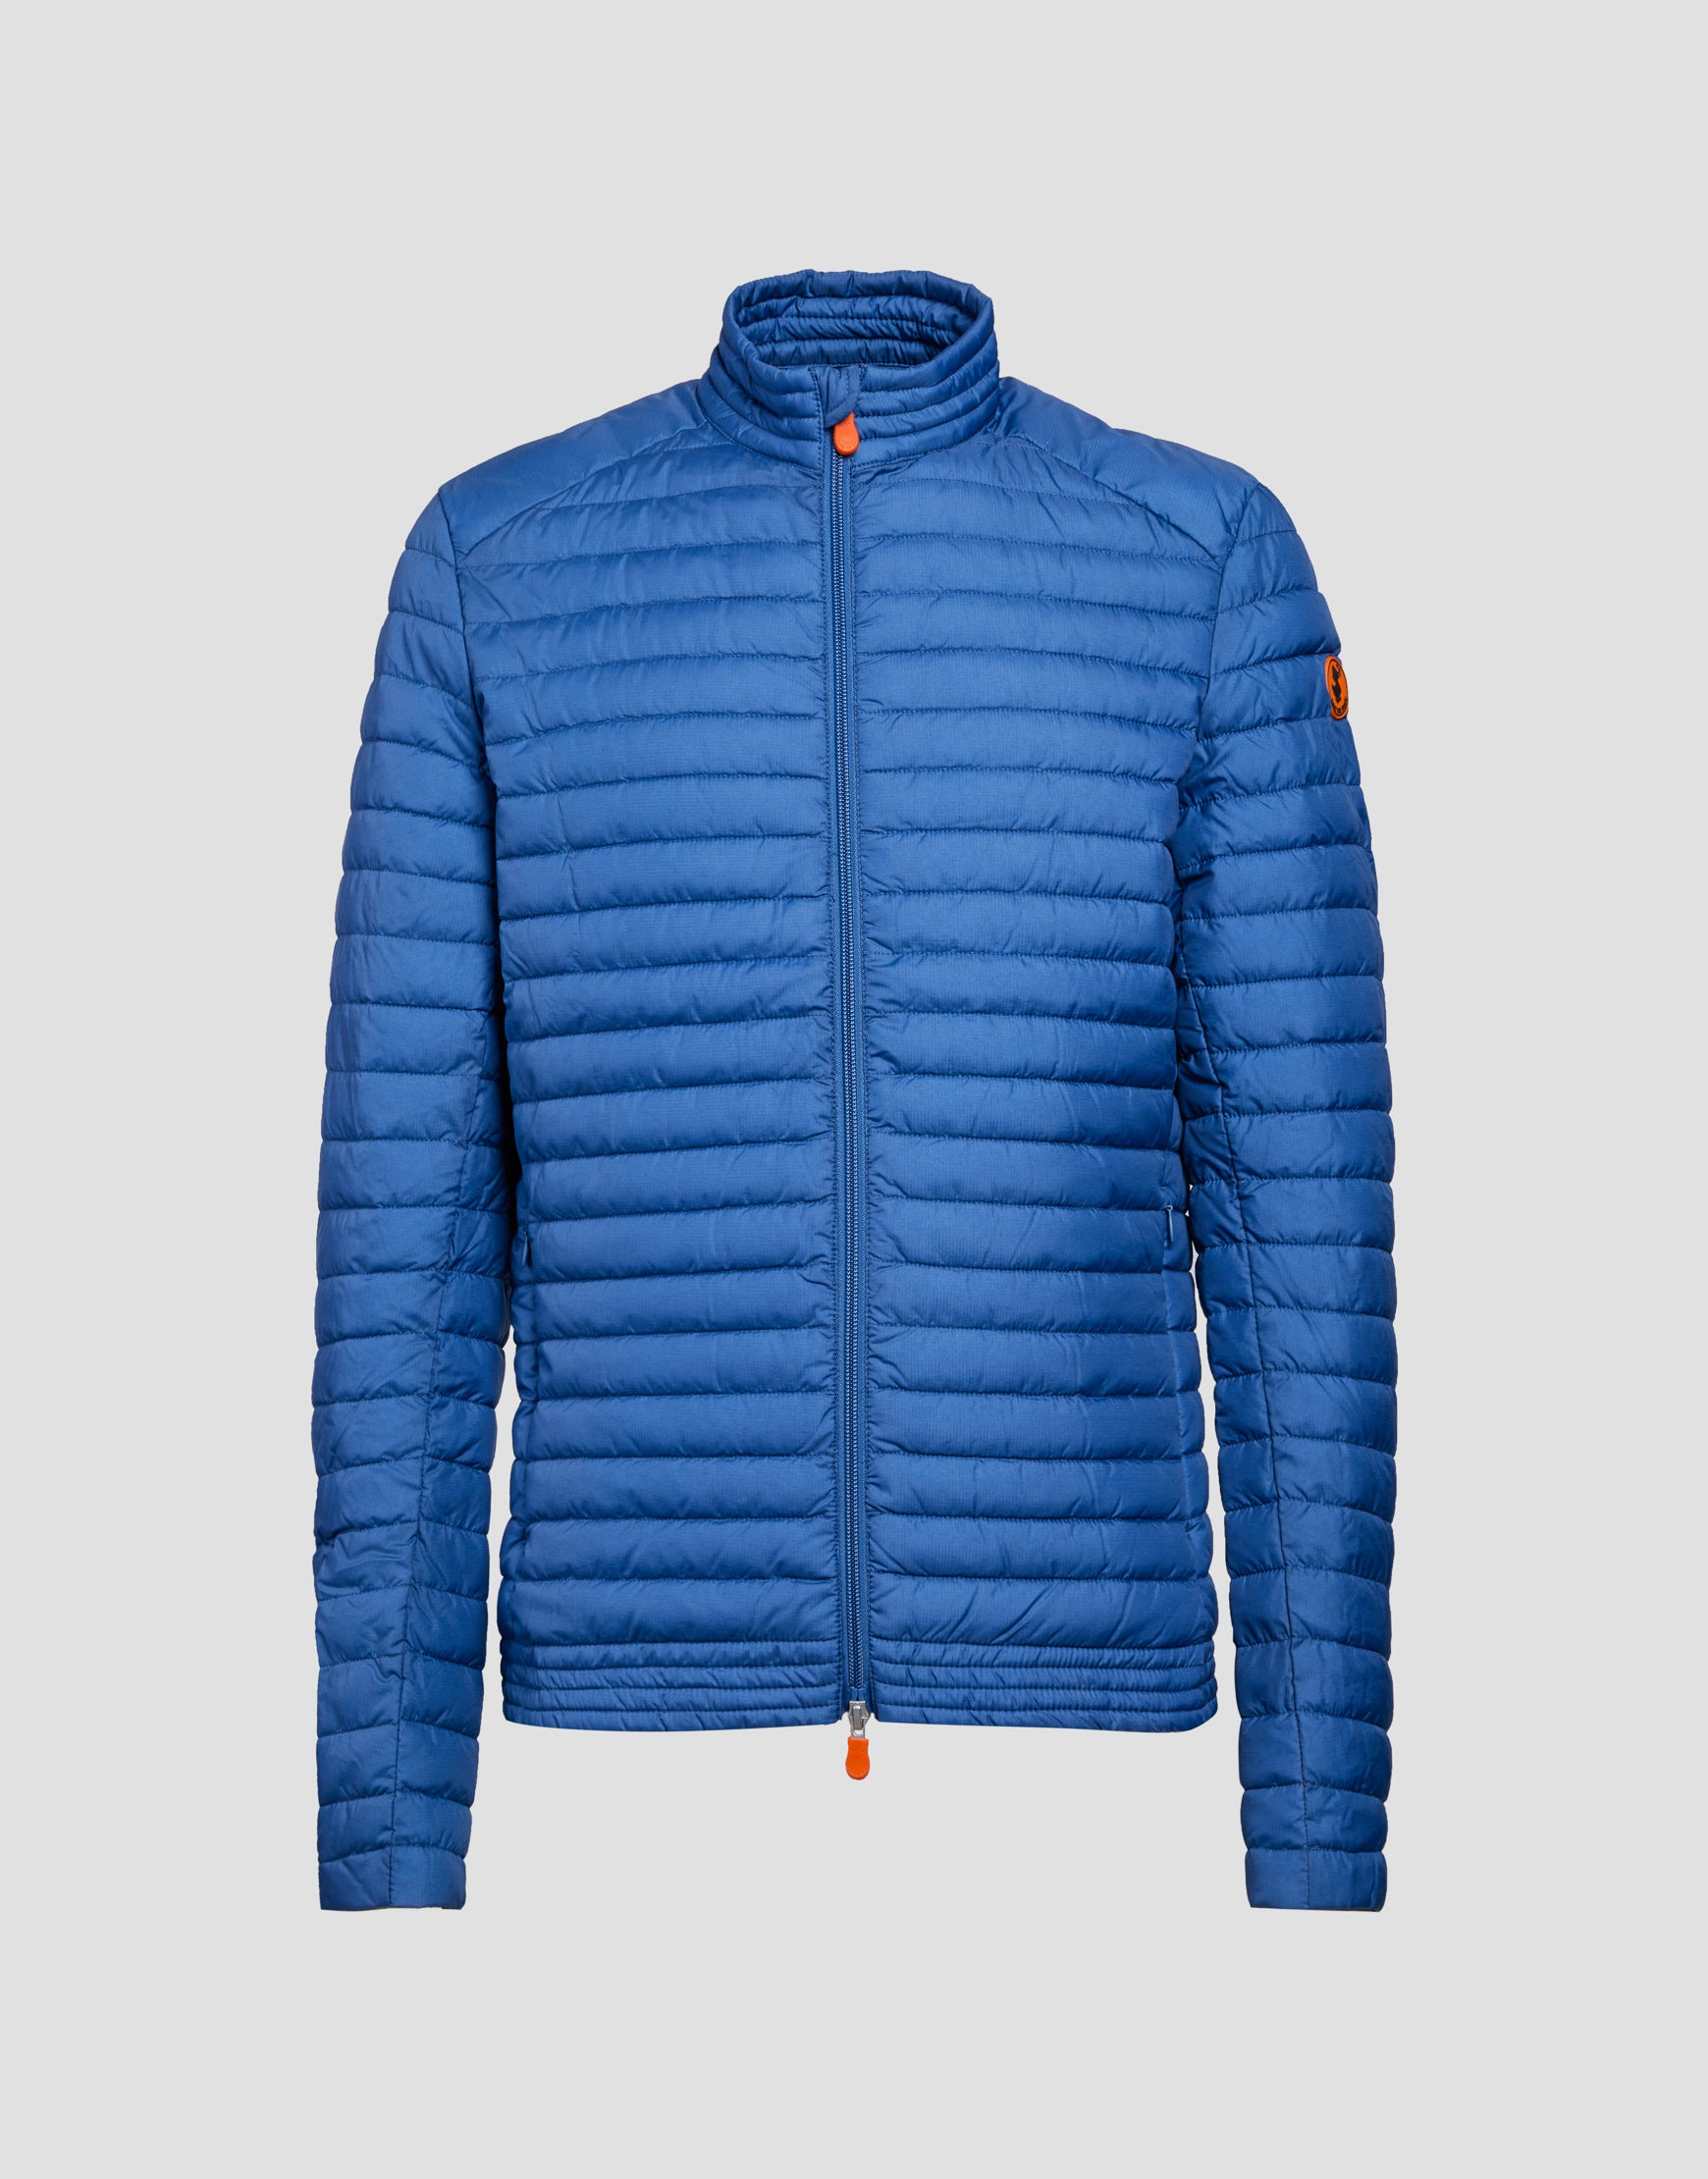 Save The Duck Mens Jacket - Save the Duck e5877075f6f7